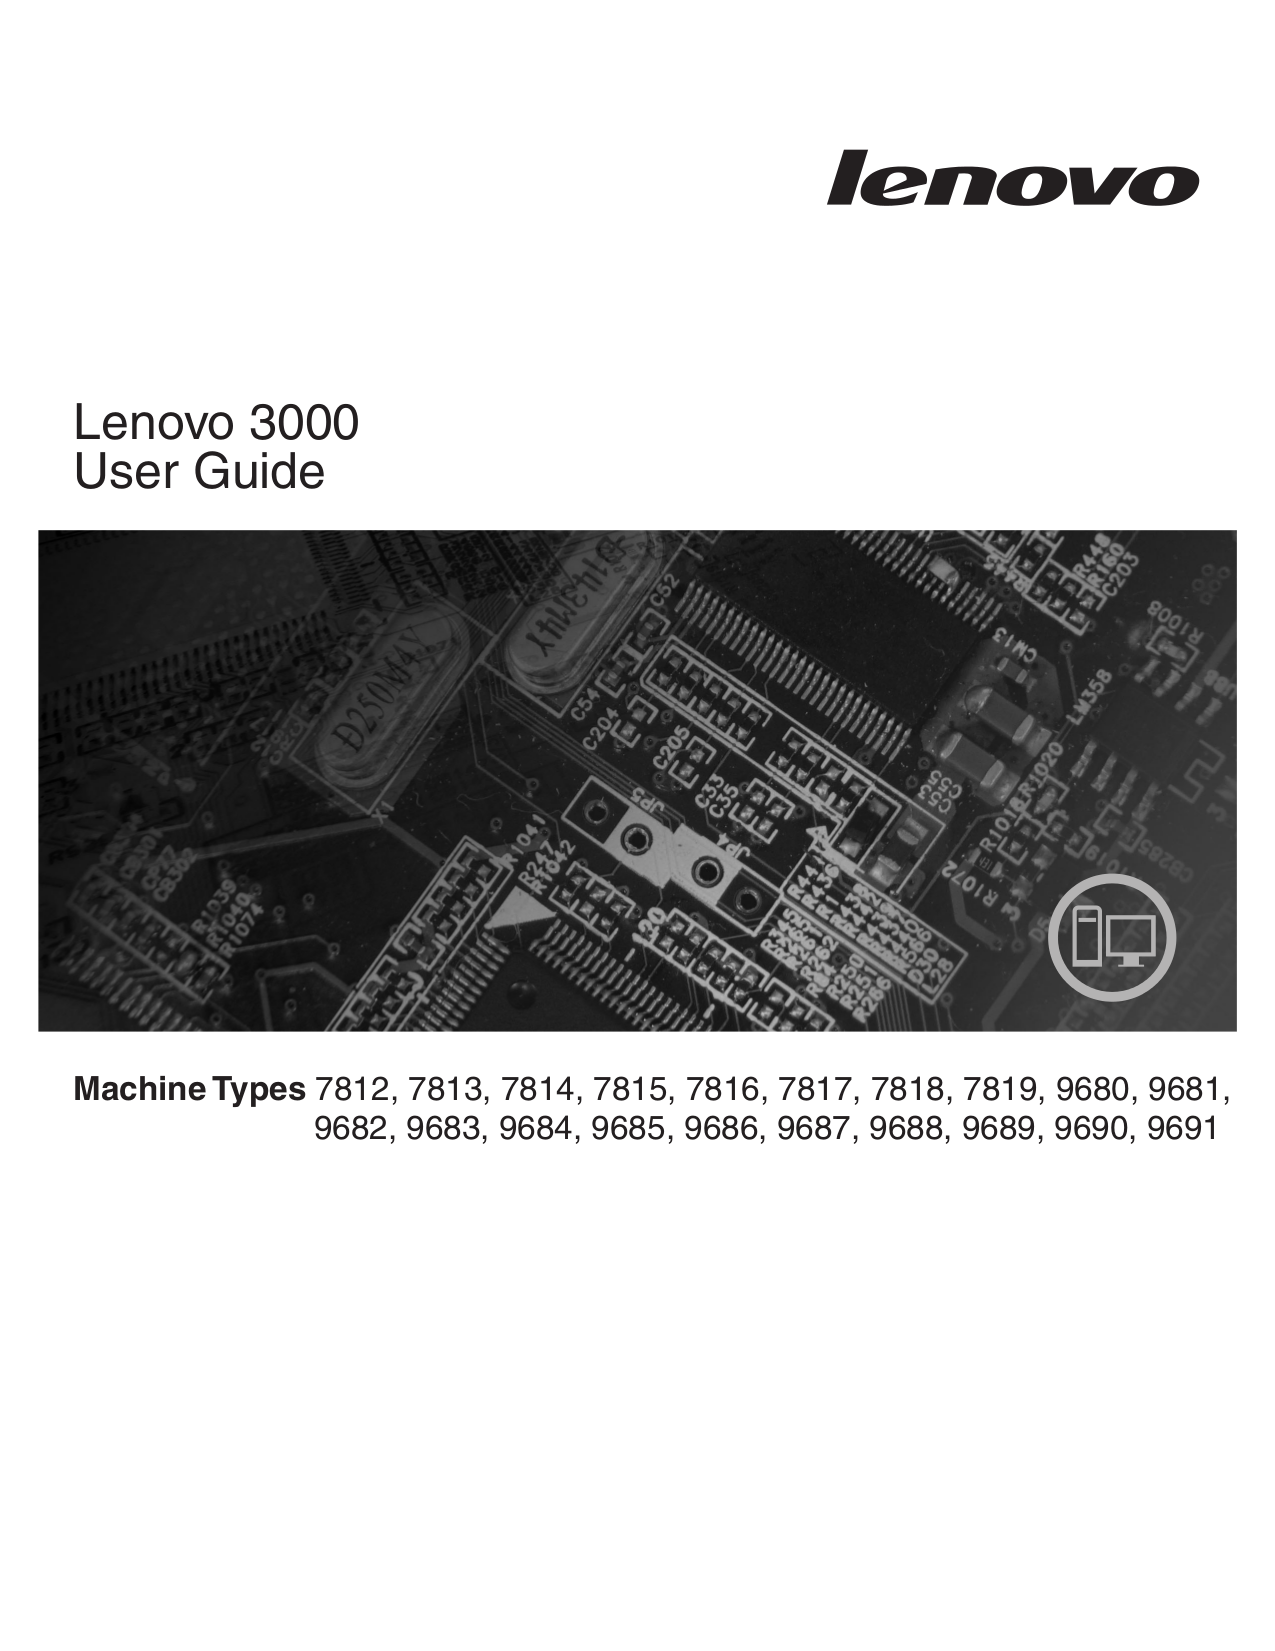 pdf for Lenovo Desktop 3000 J200 9690 manual